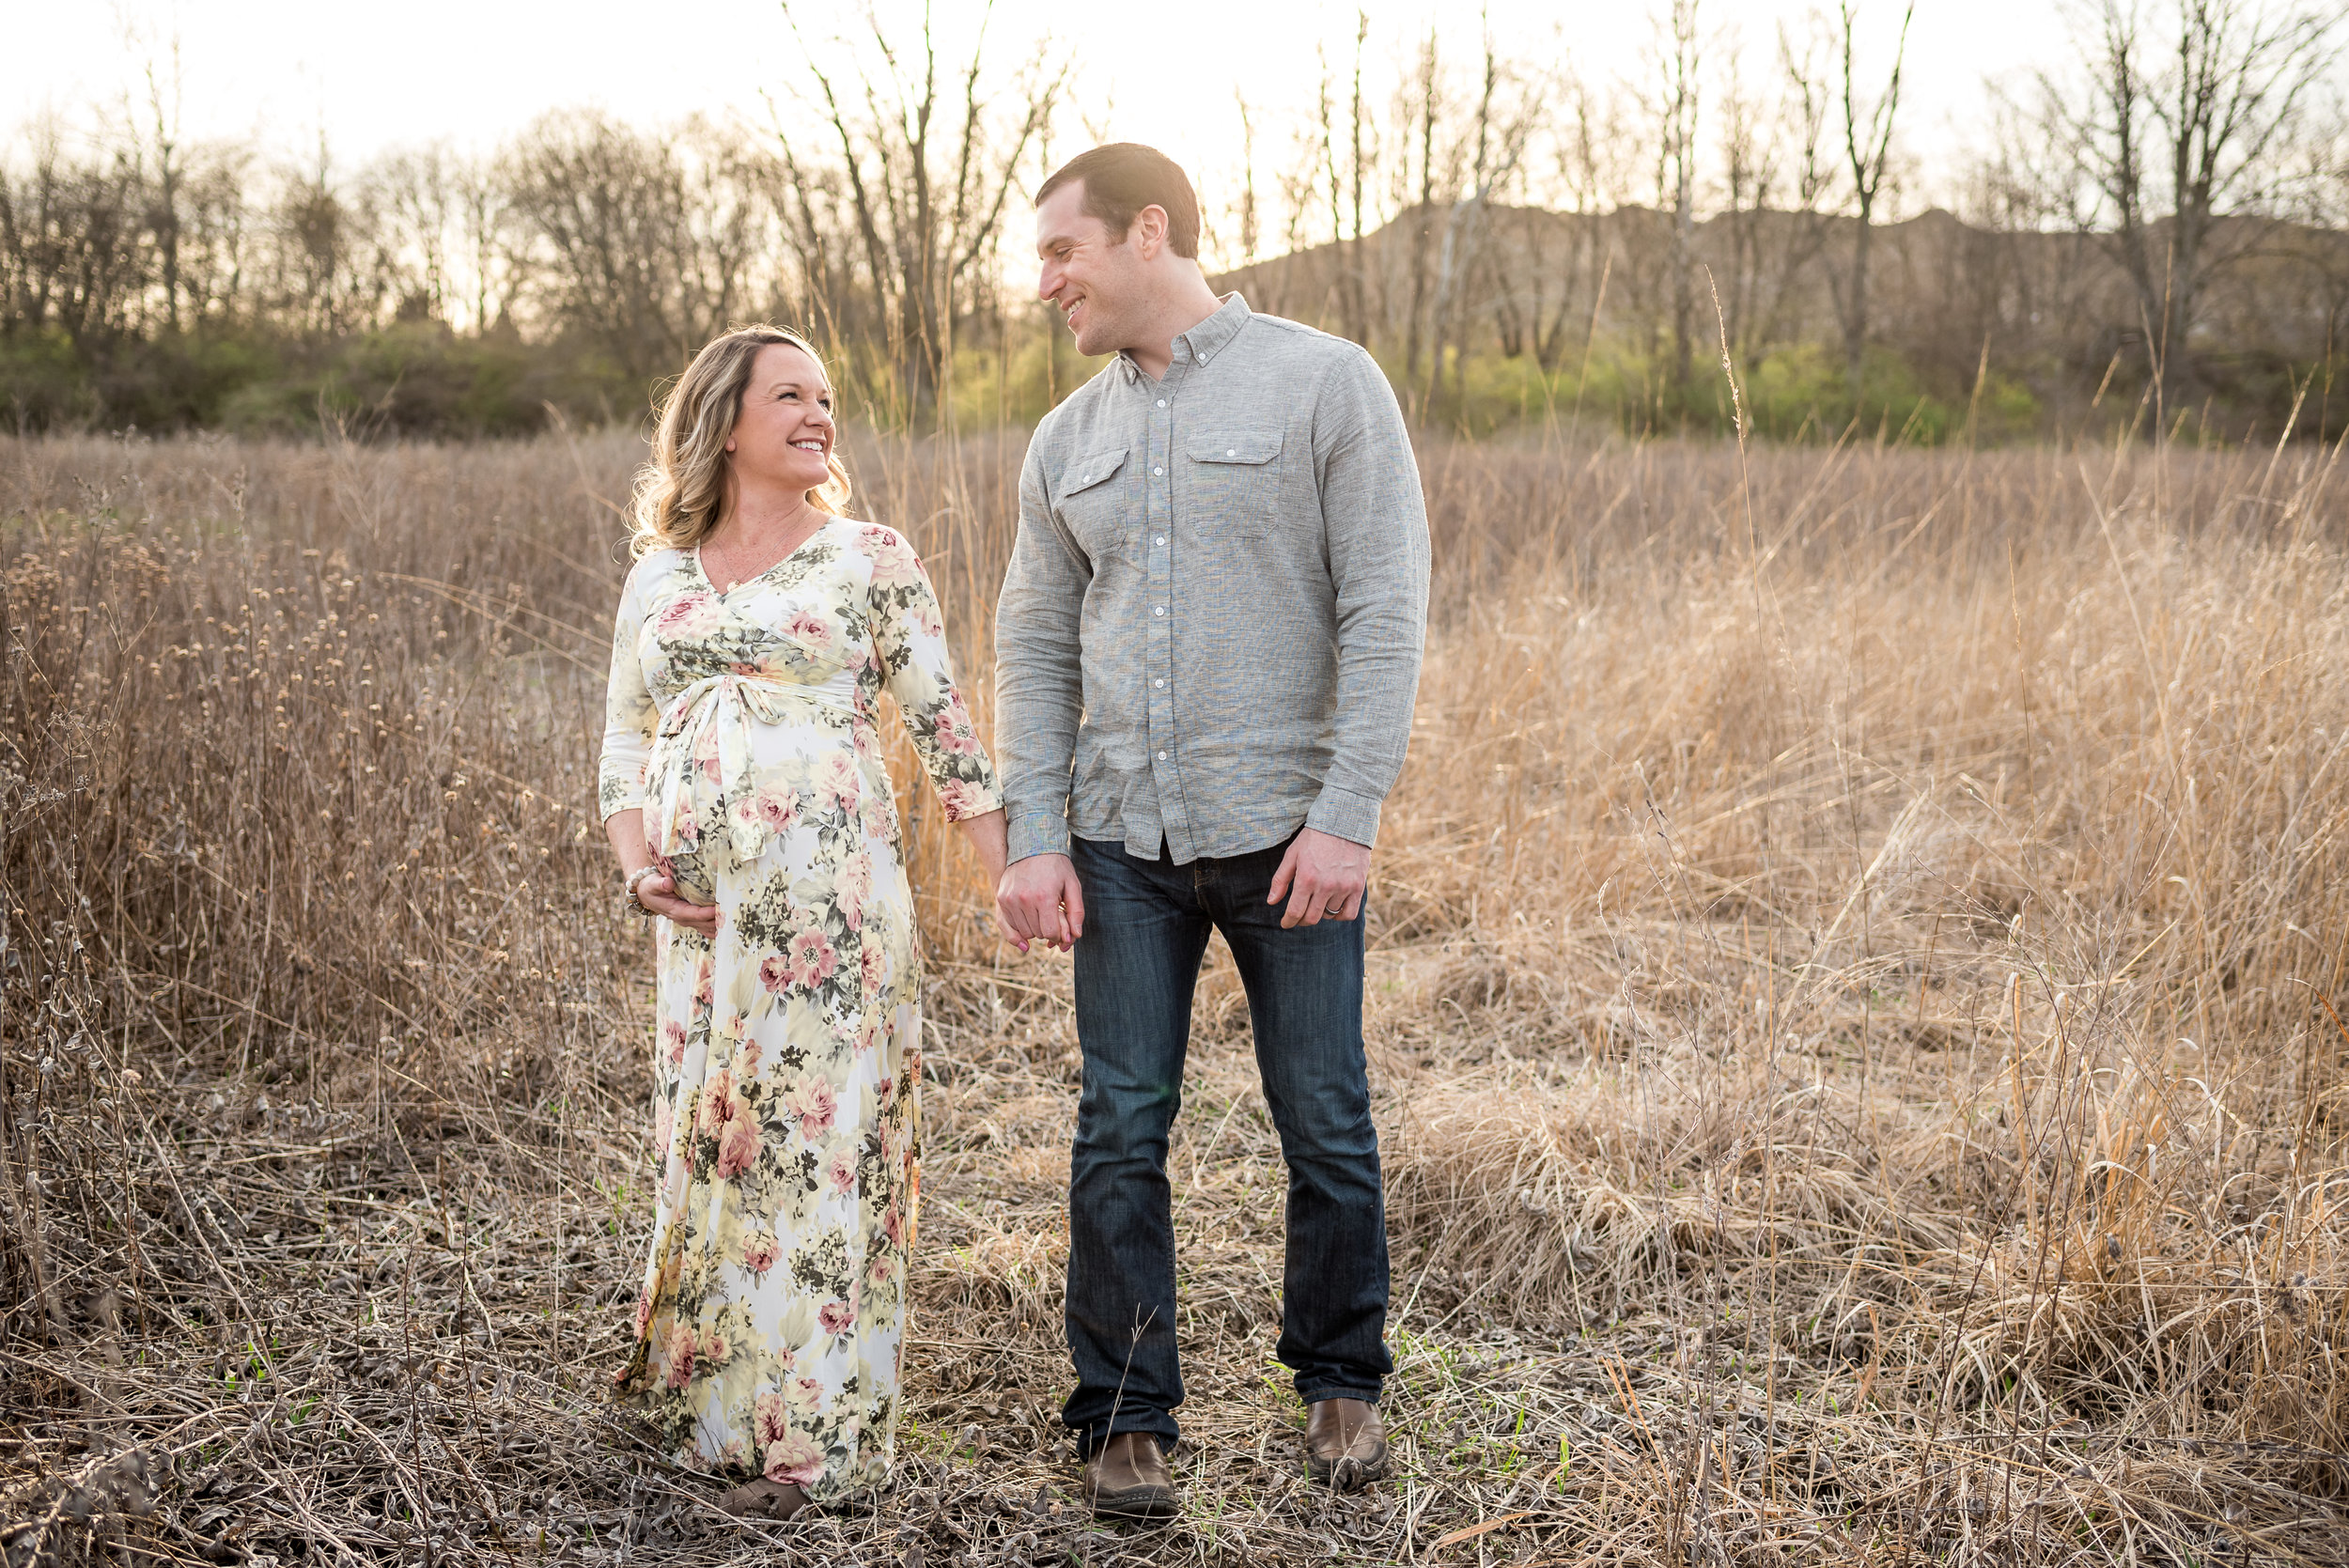 Worly-spring-maternity-session-at-sunset